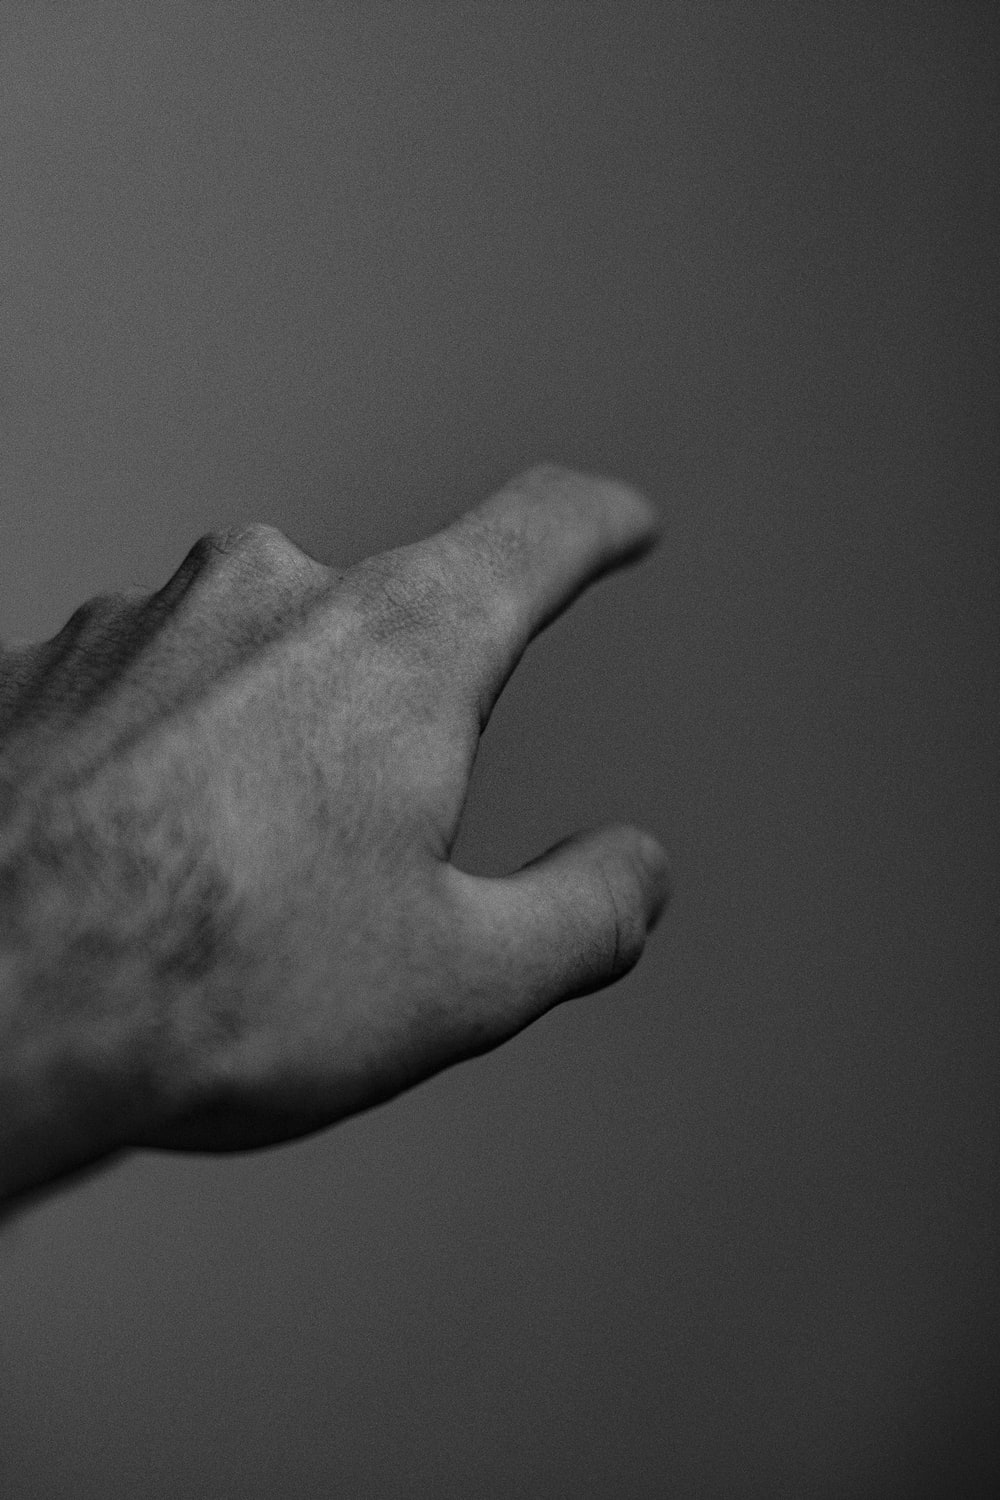 grayscale photography of pointing person